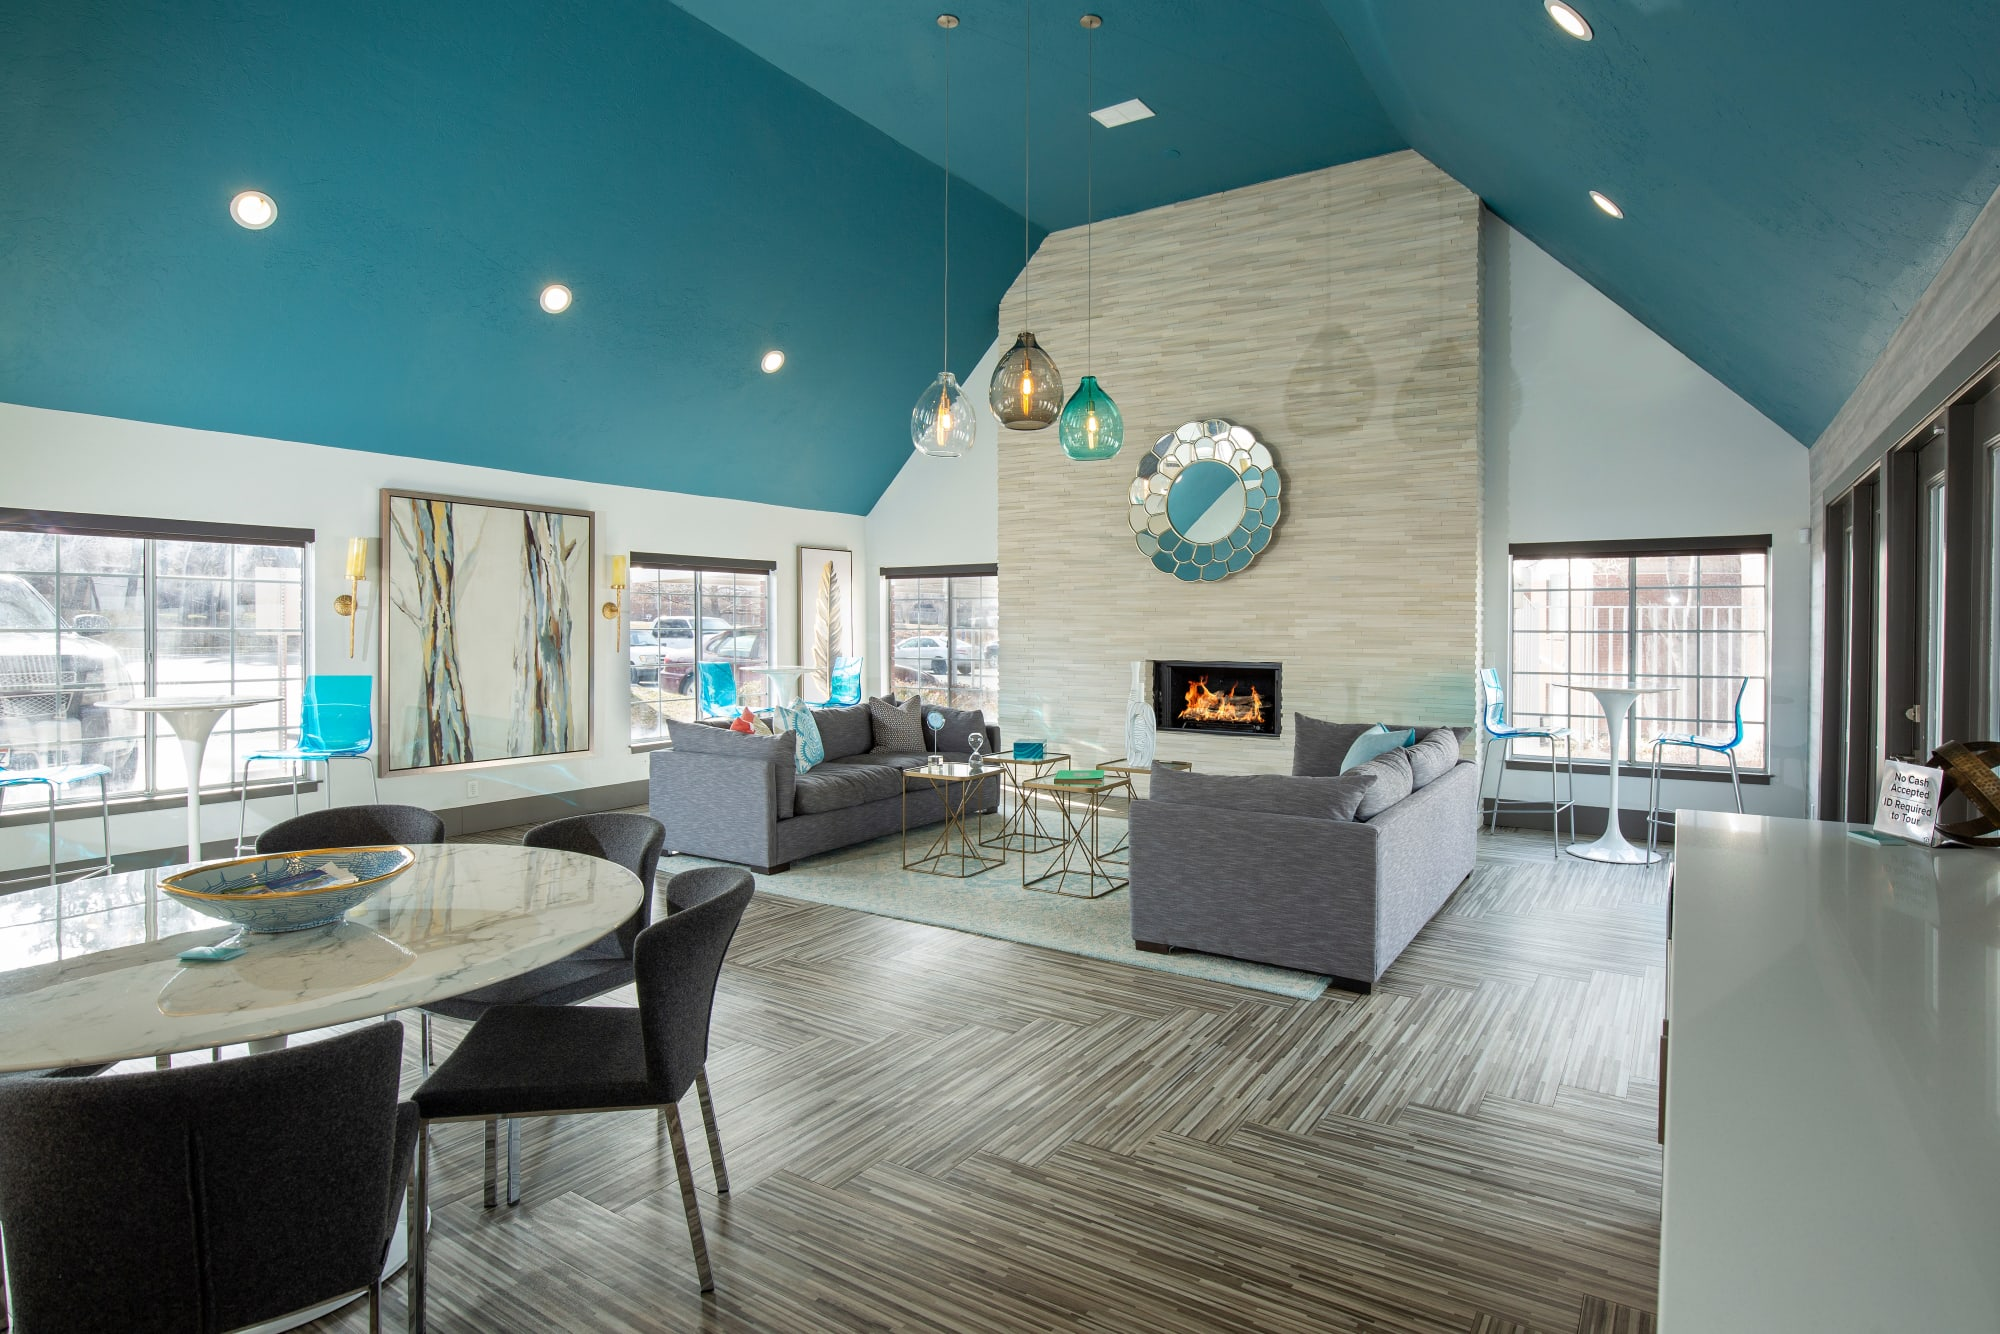 Clubhouse with a lounge area and a fireplace at Windgate Apartments in Bountiful, Utah